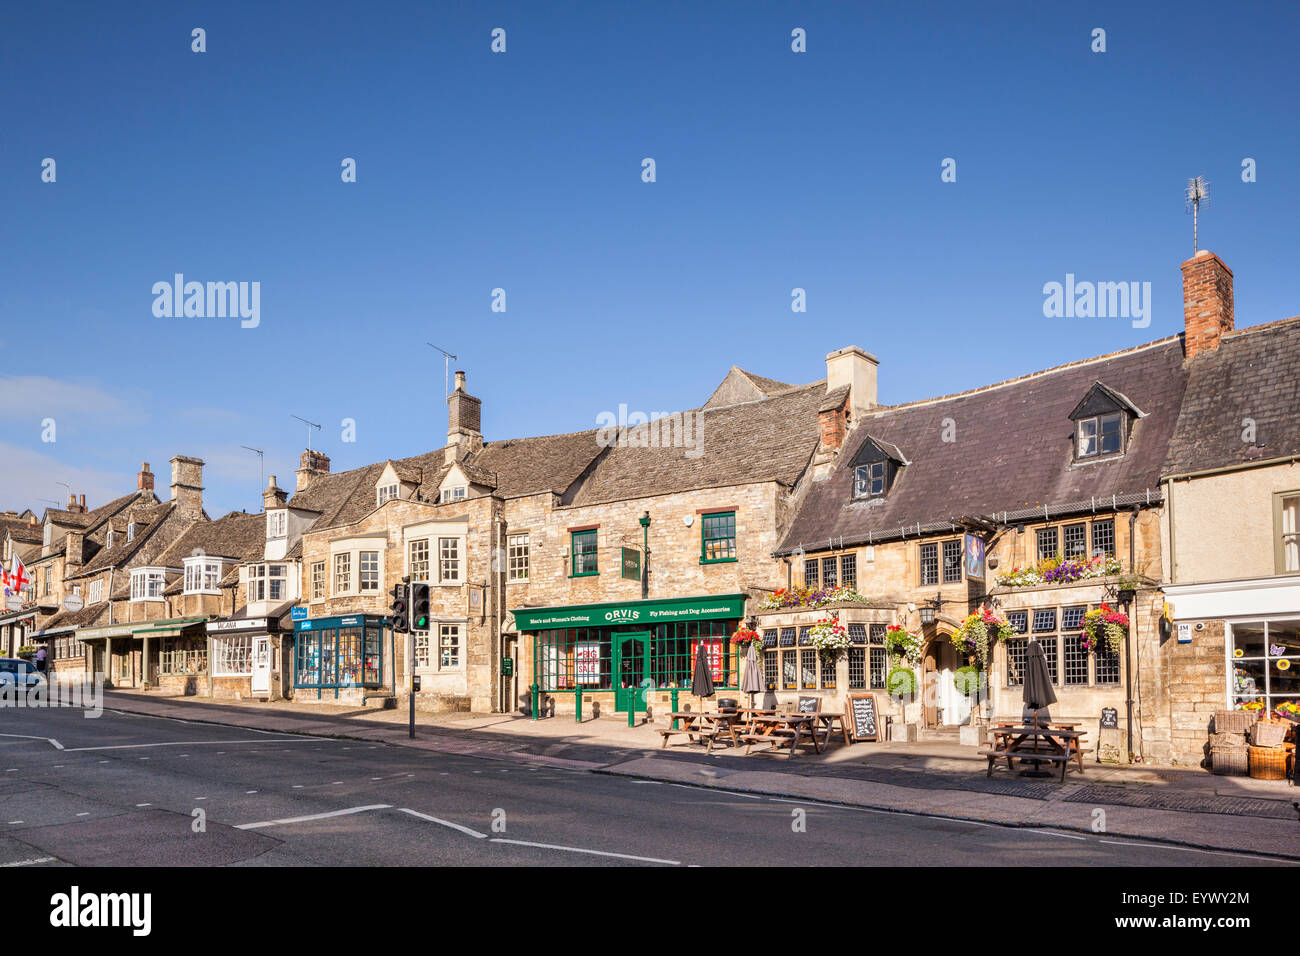 The pretty High Street in the Cotswold village of Burford, Oxfordshire, England - Stock Image